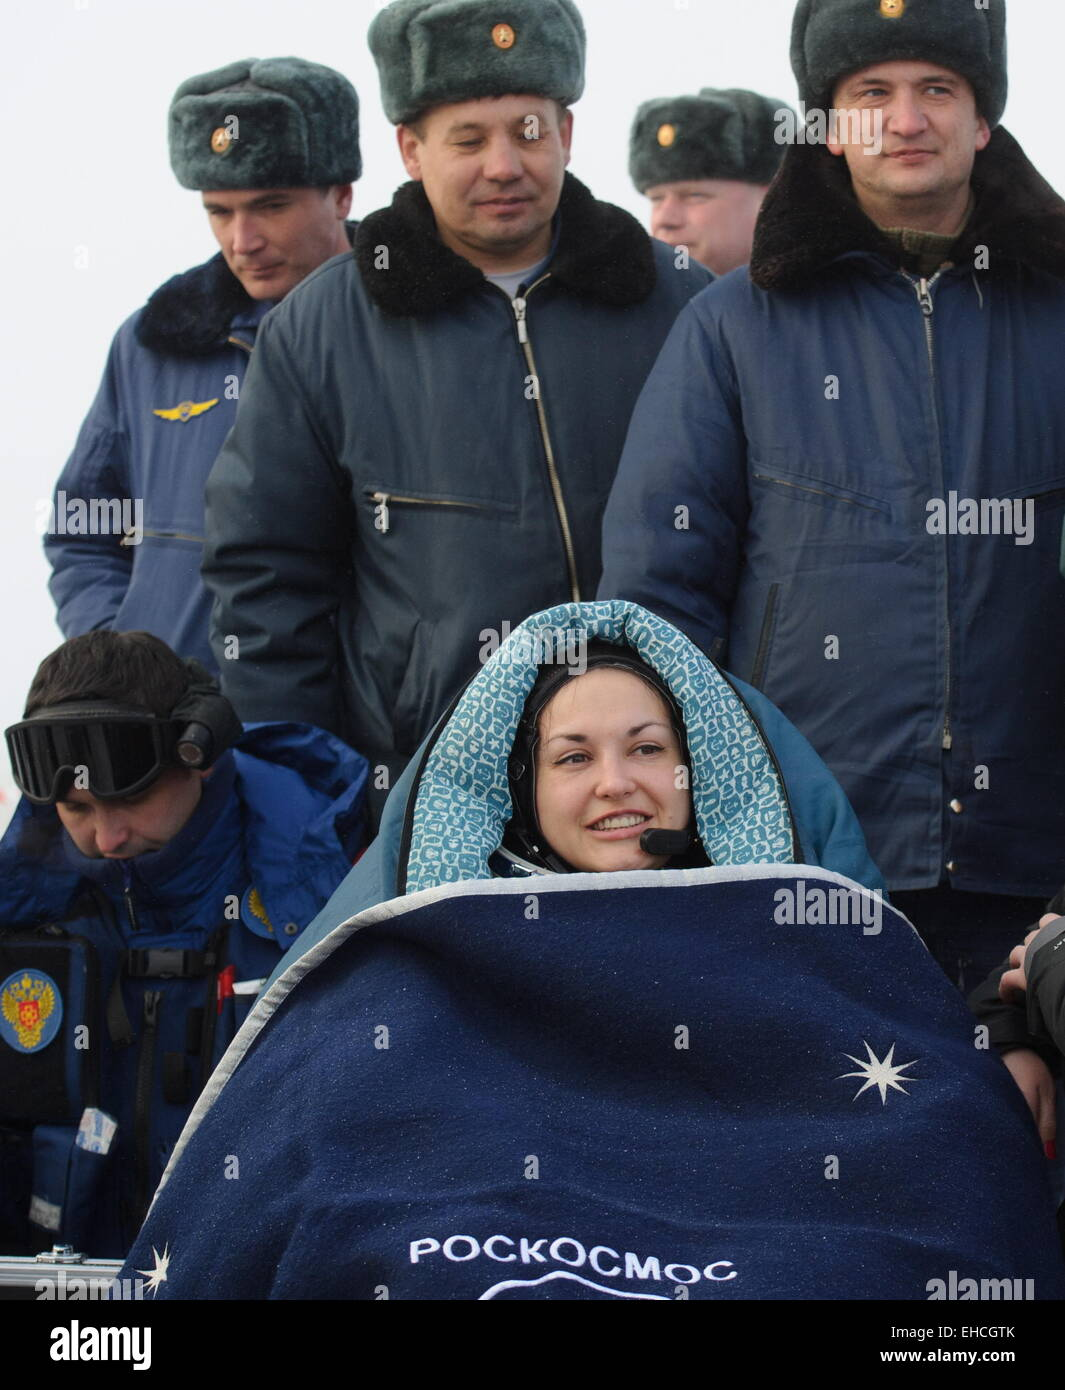 Kazakhstan. 12th March, 2015. ISS Expedition 41/42 crew member, Russia's cosmonaut Yelena Serova seen after - Stock Image